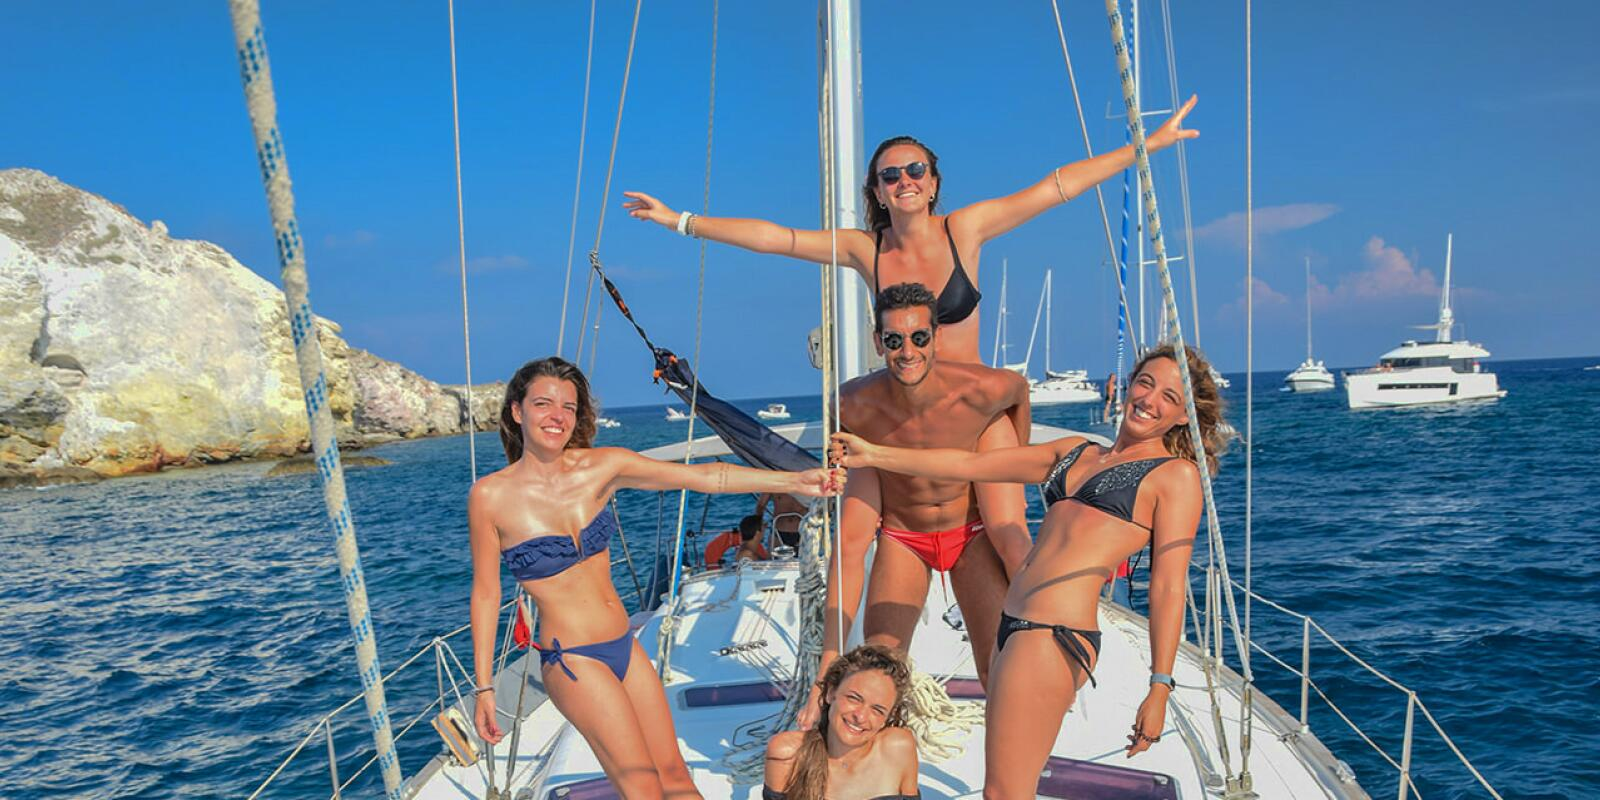 Flotilla holidays in the Aeolian Islands